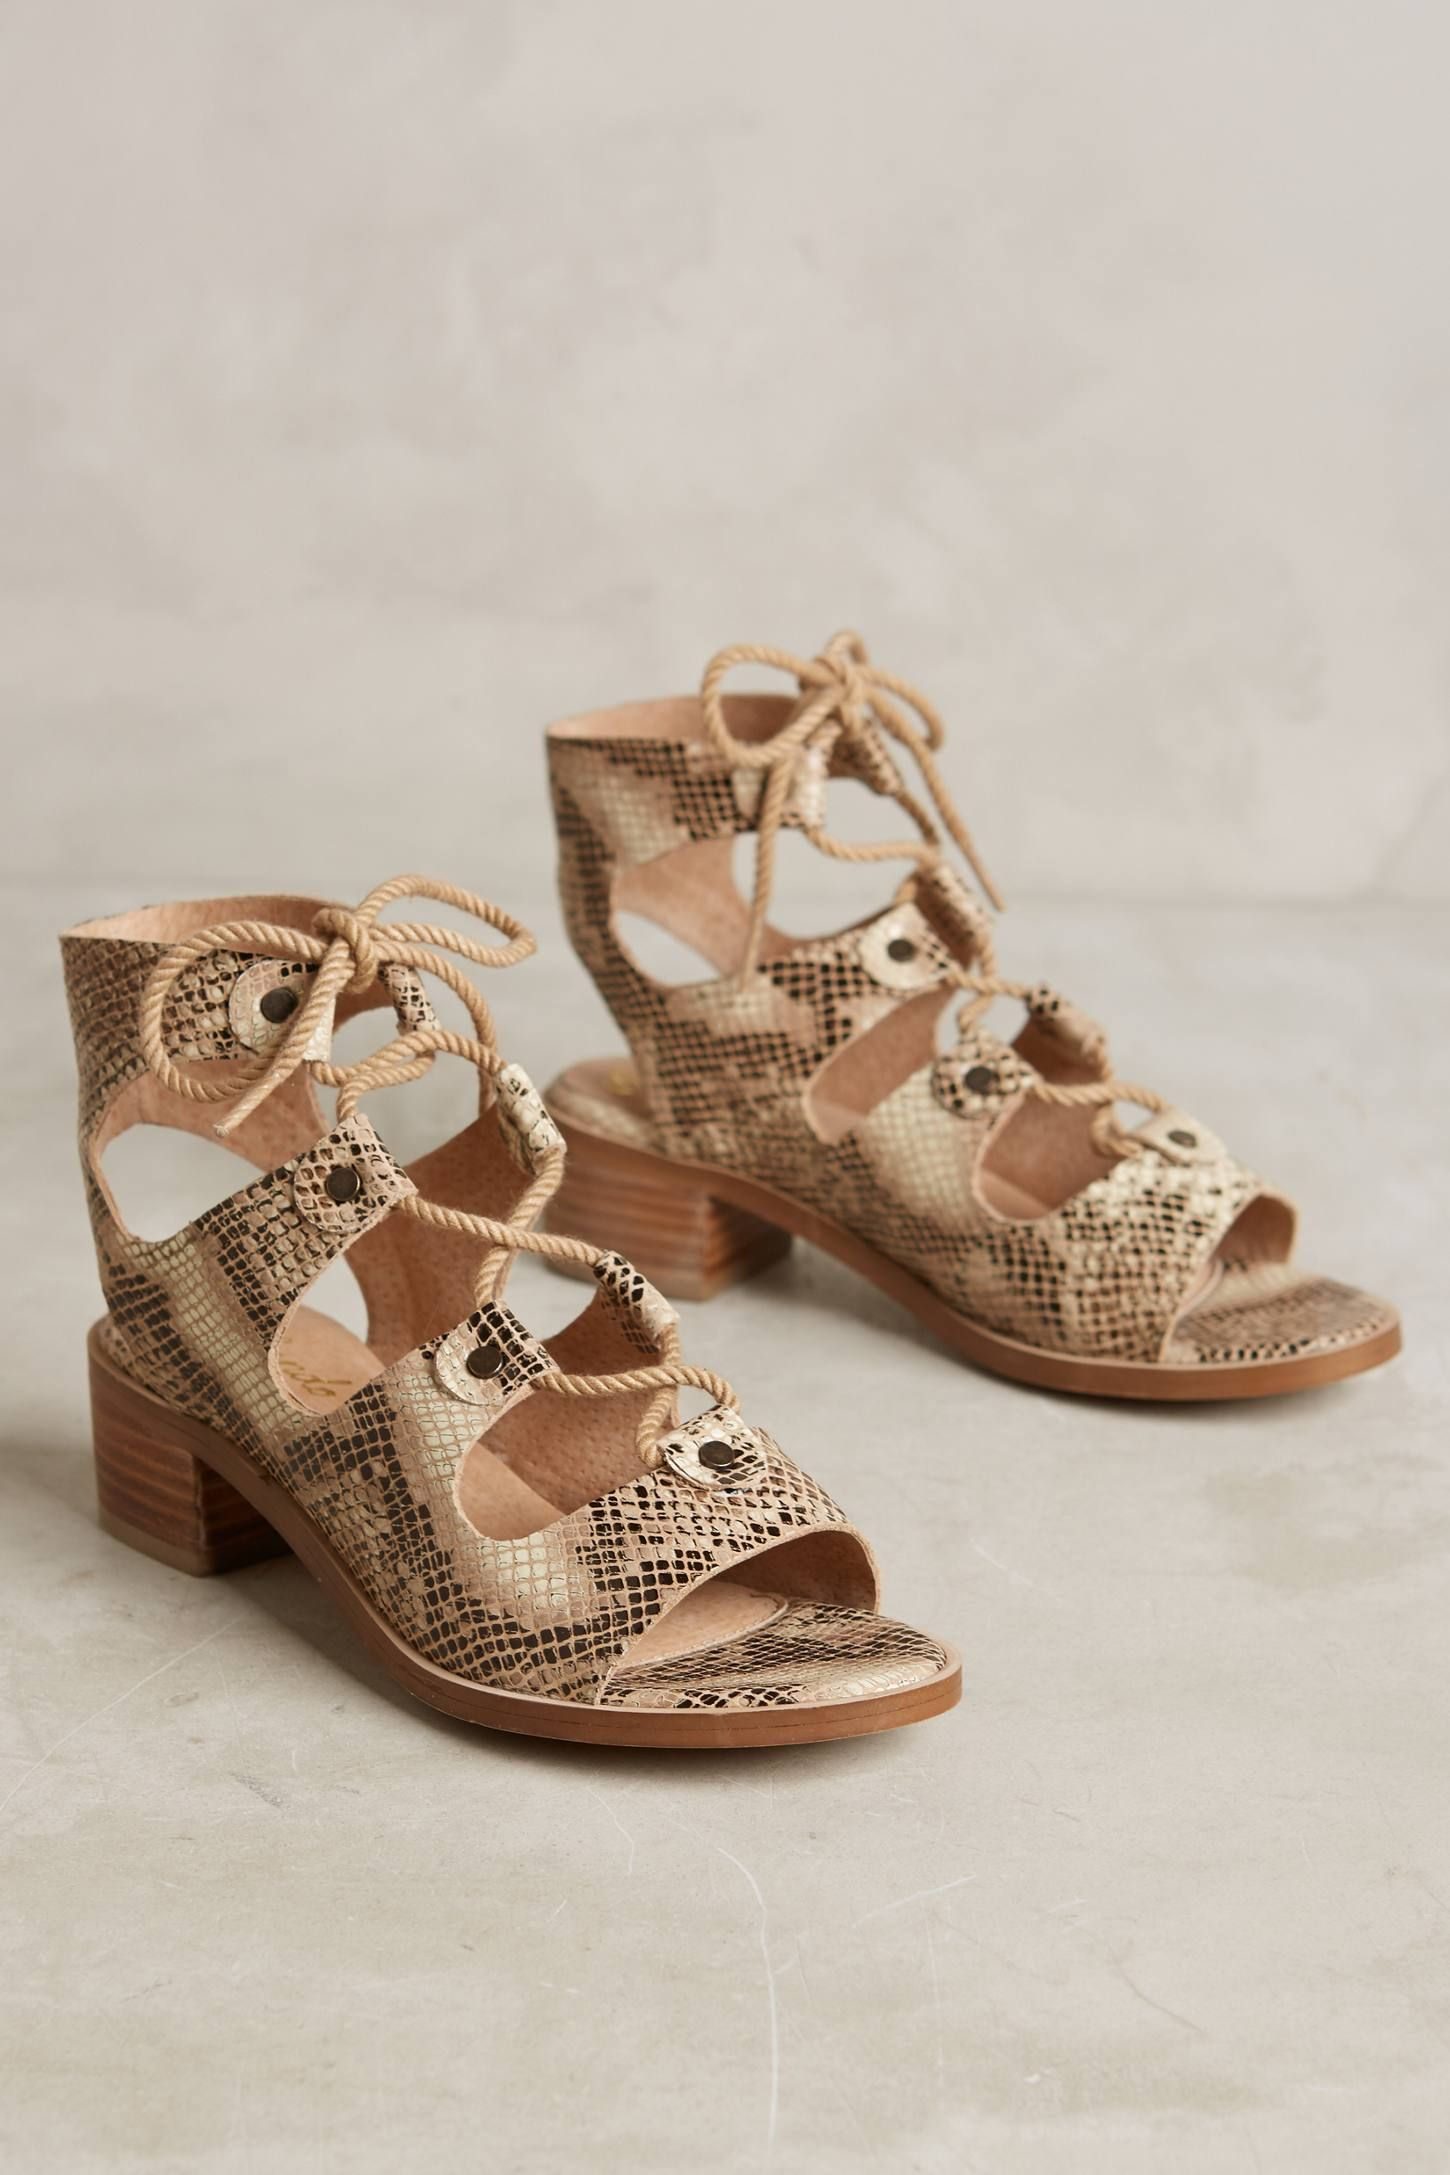 ddb2ab3fbd64 Liendo By Seychelles Marbella Lace-Up Sandals | personales | Lace up ...